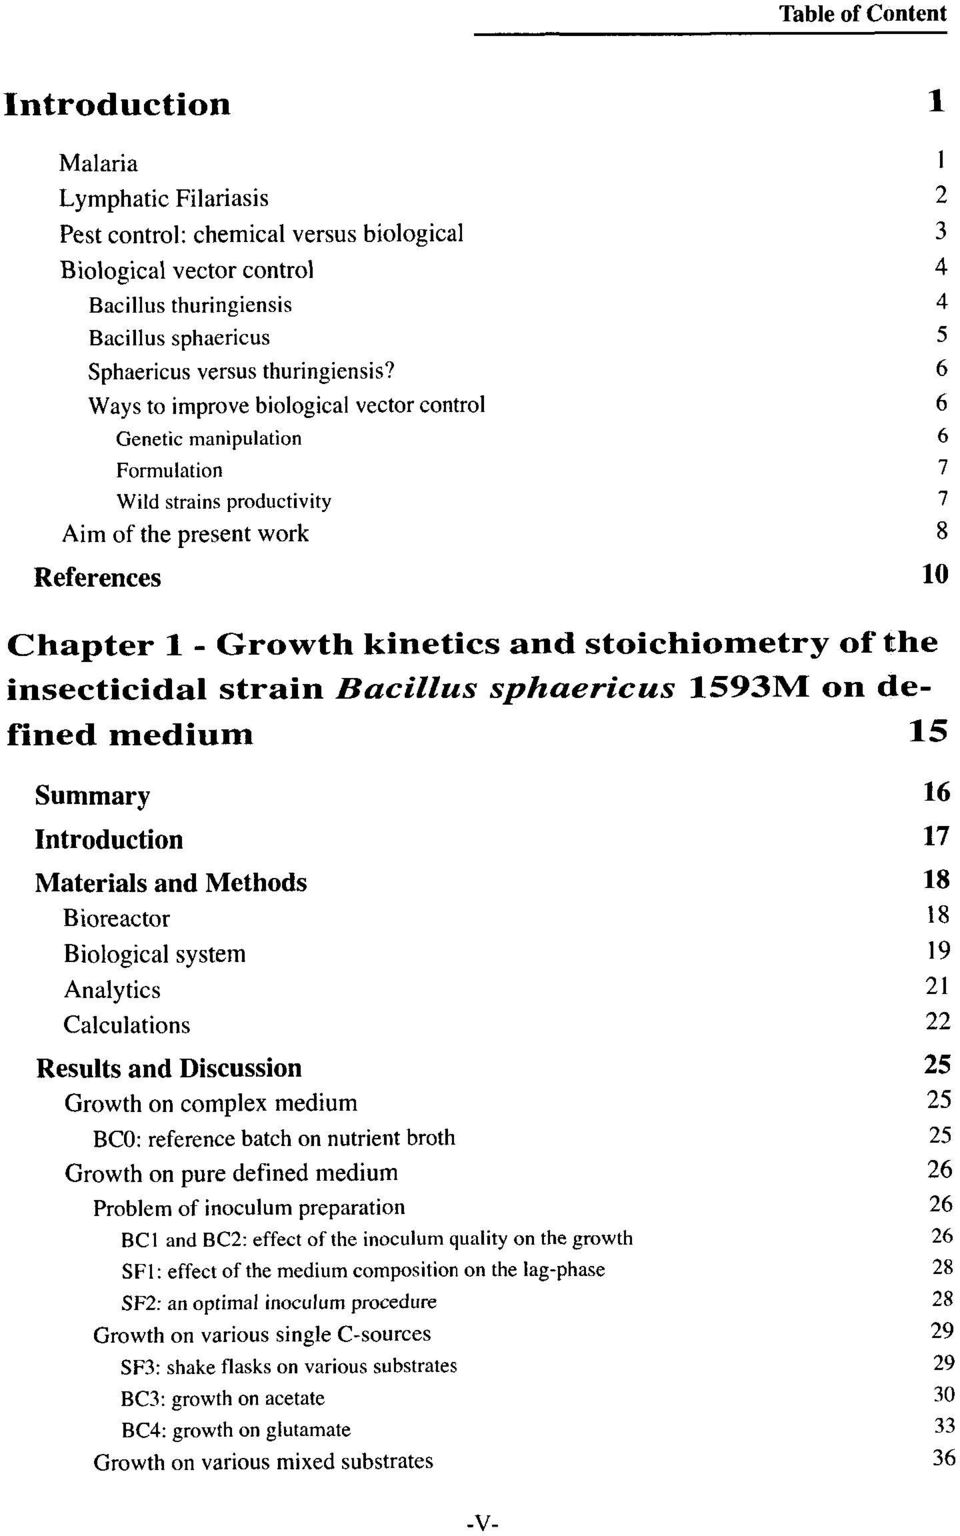 Bacillus sphaericus 1593M on defined medium 15 Summary Materials and Methods Bioreactor Biological system Analy tics Calculations Results and Discussion Growth on complex medium BCO: reference batch